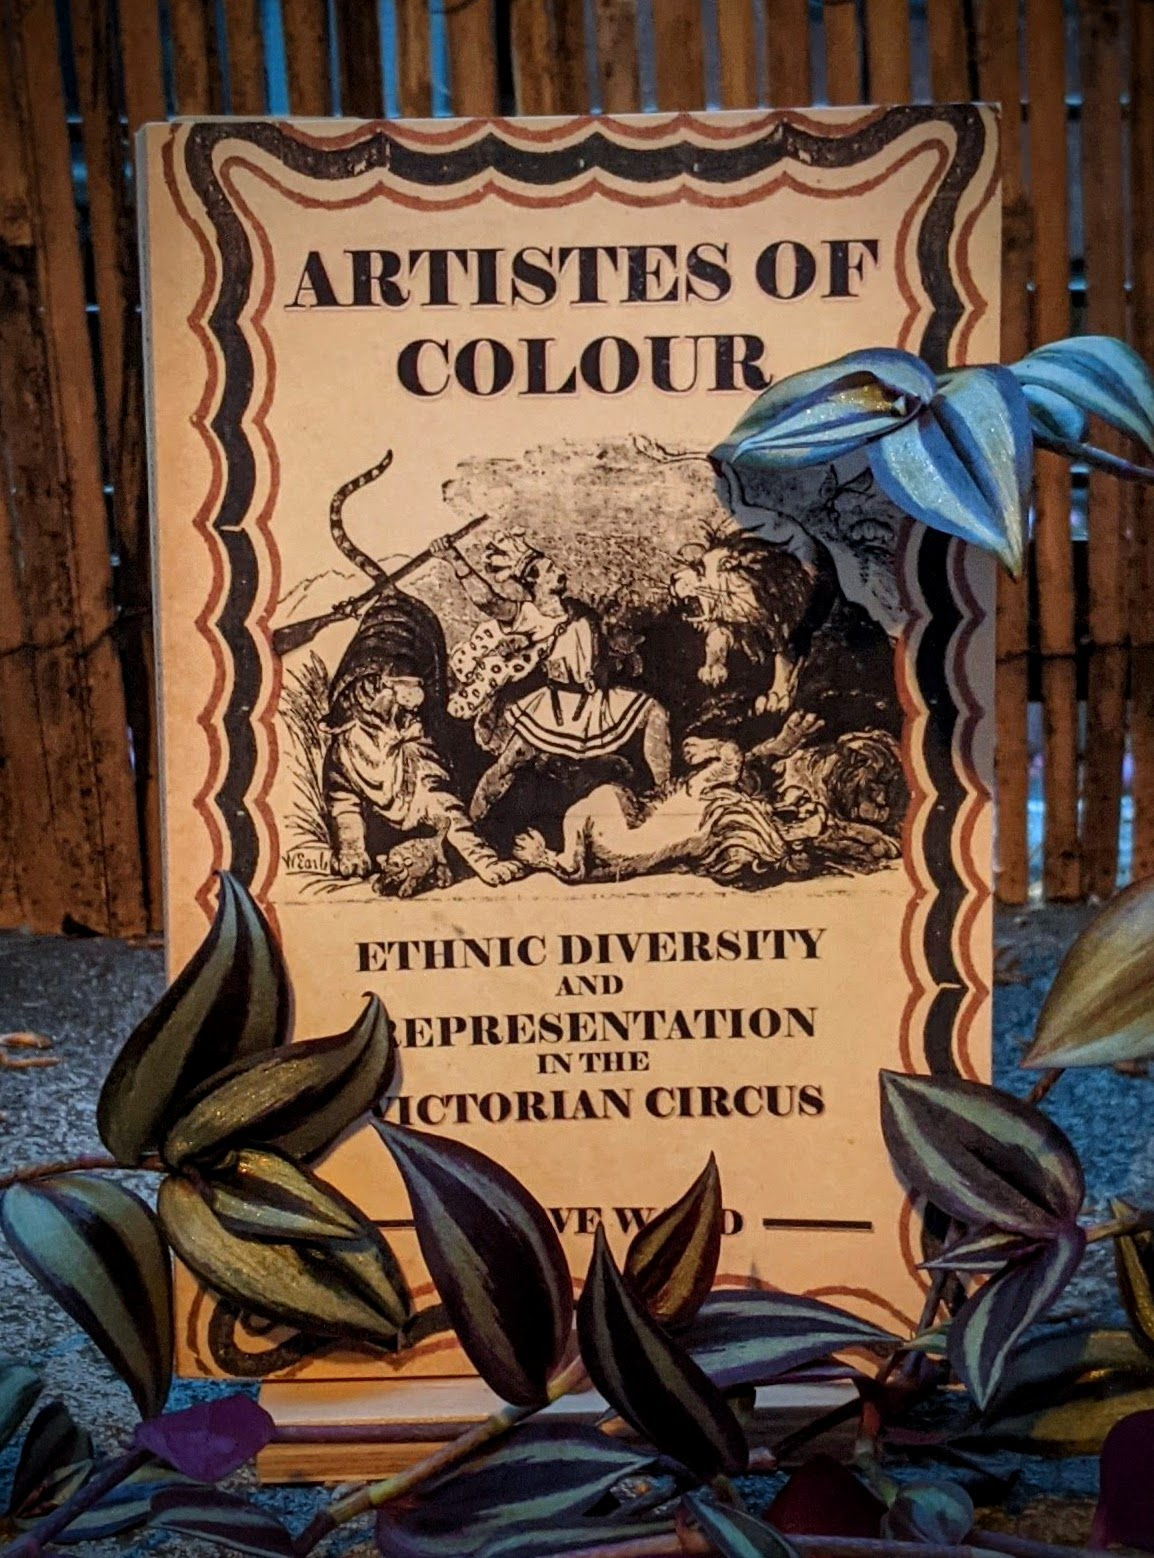 bookcover of Artistes of Colour